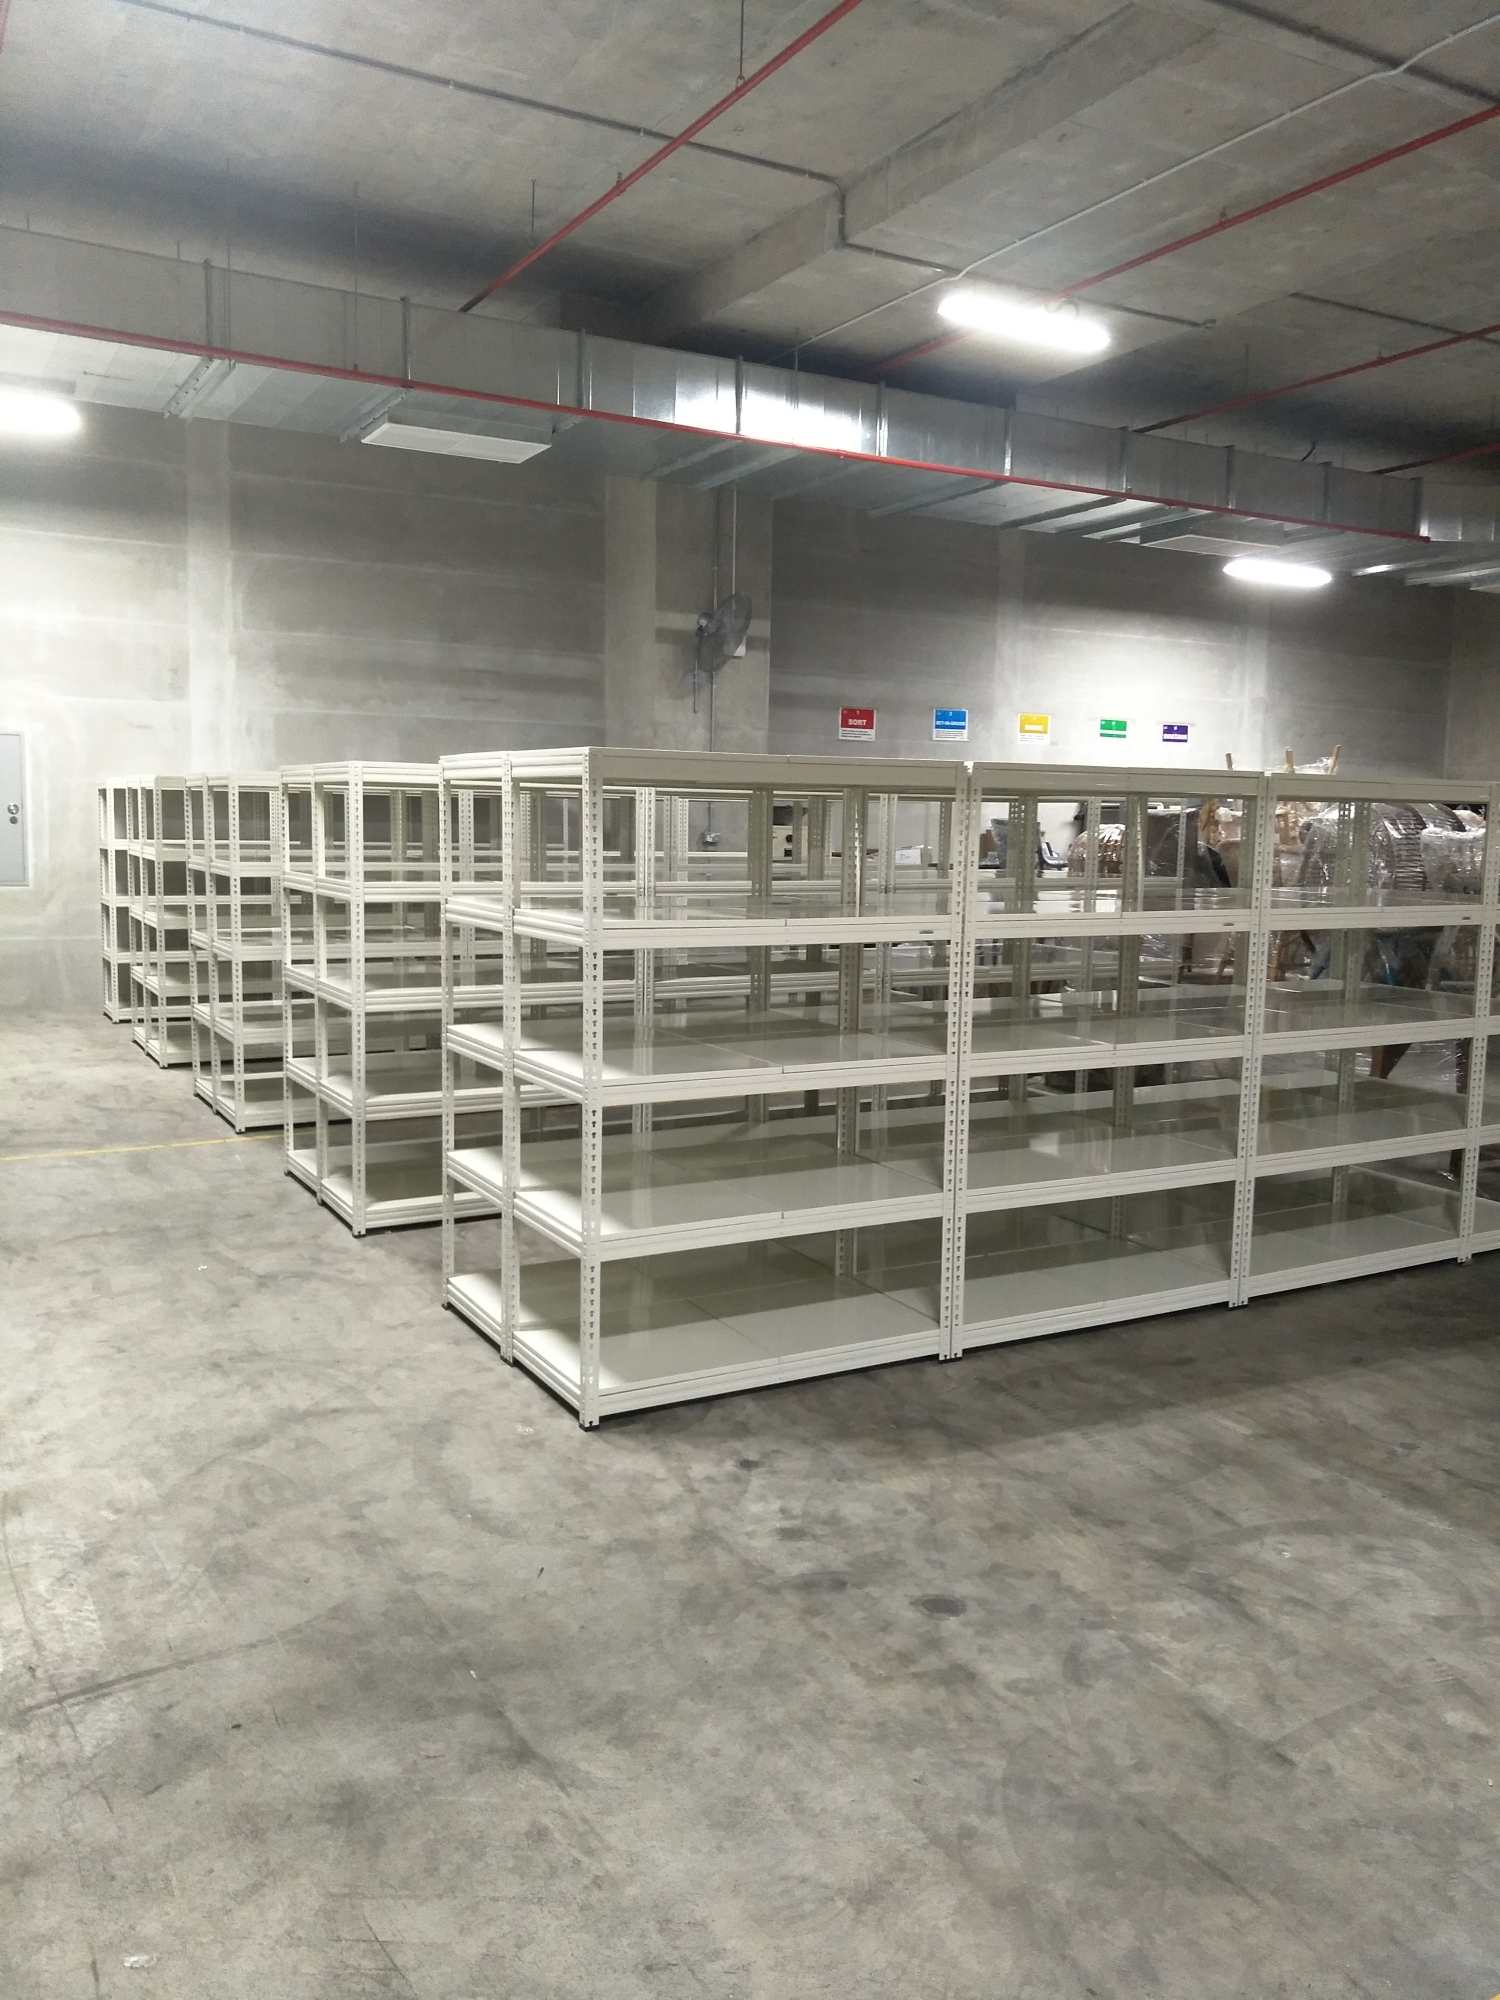 MYSTAR Boltless Shelving Projects installed within a few hours.